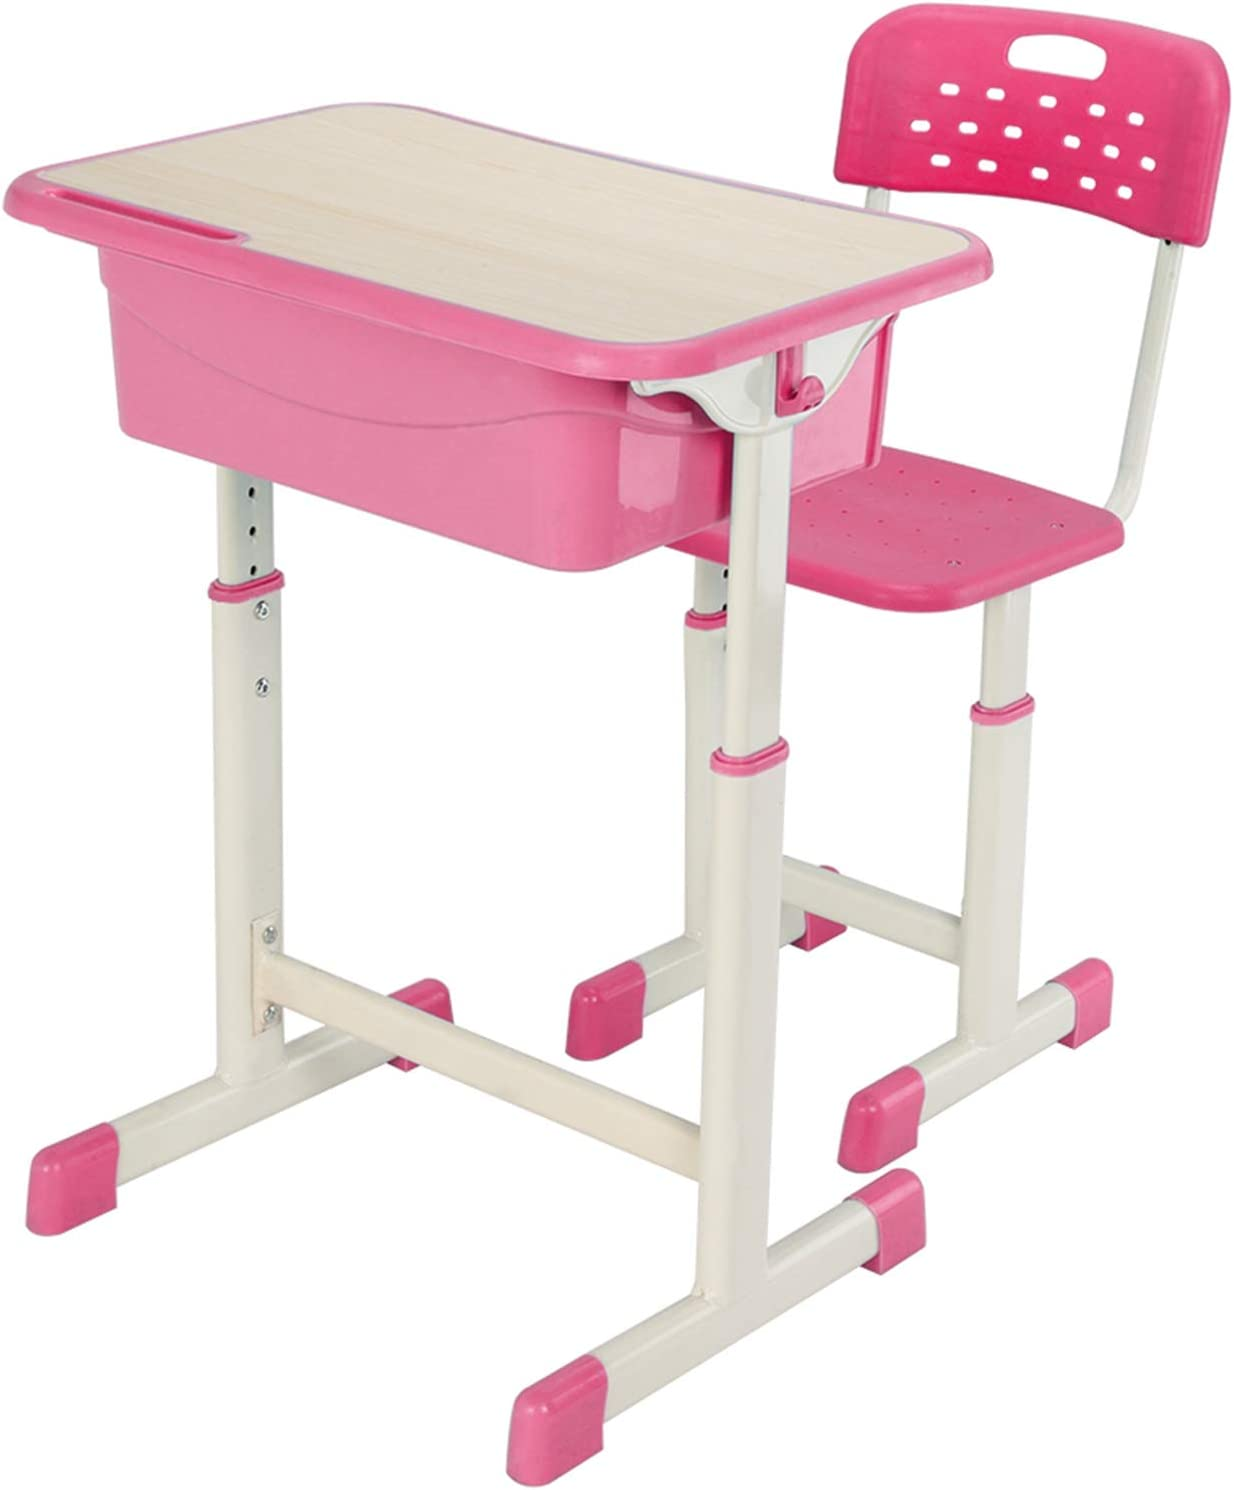 Height Adjustable Students Study Desk Kids Desk and Chair Set Workstation Writing Table Stool Kit for School Home RBtoday Student Desk /& Chair Kit Blue